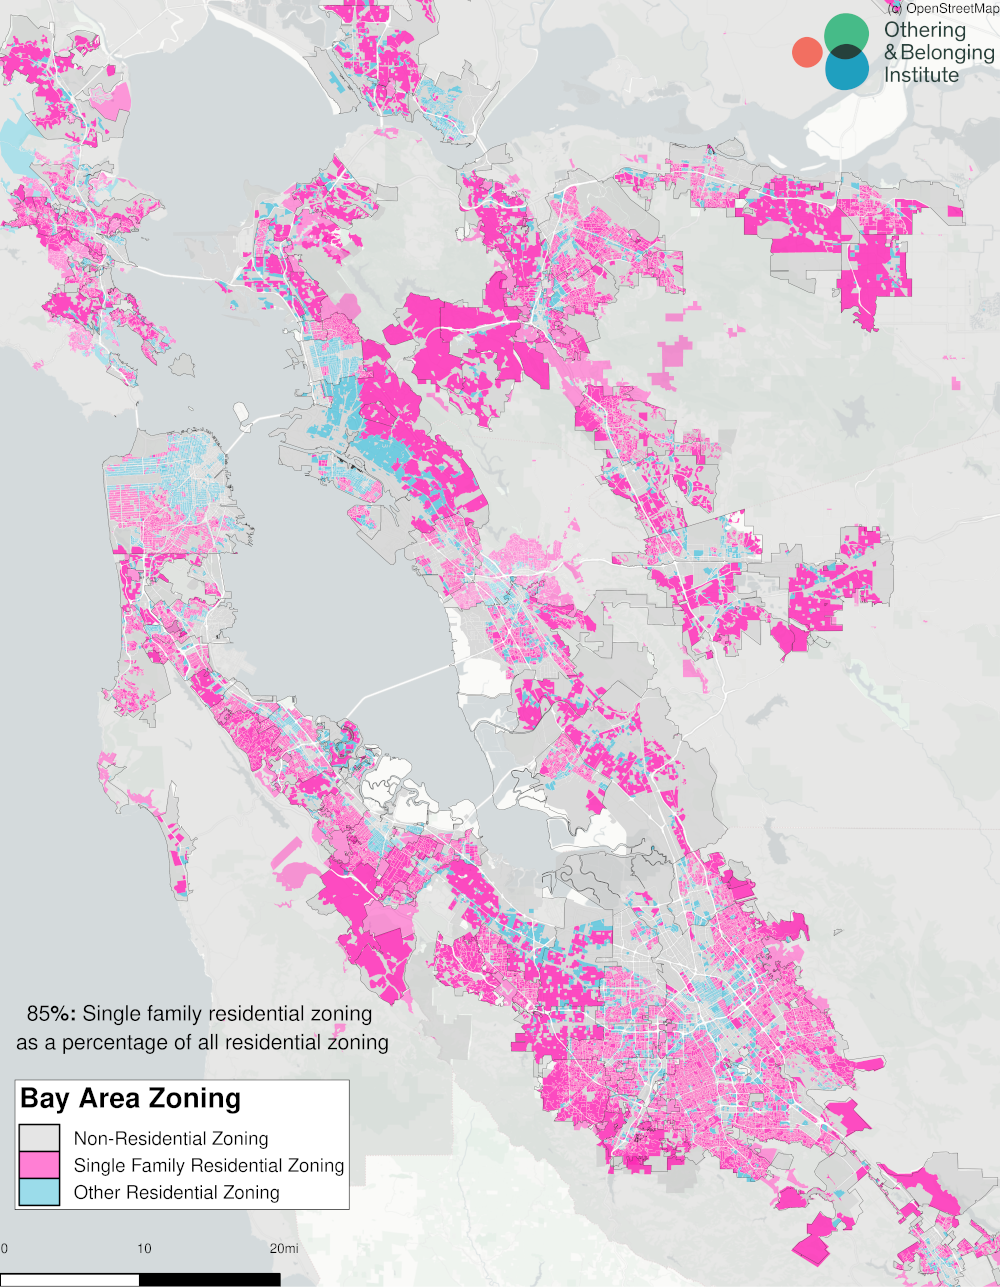 Zoning parcel map of the bay area